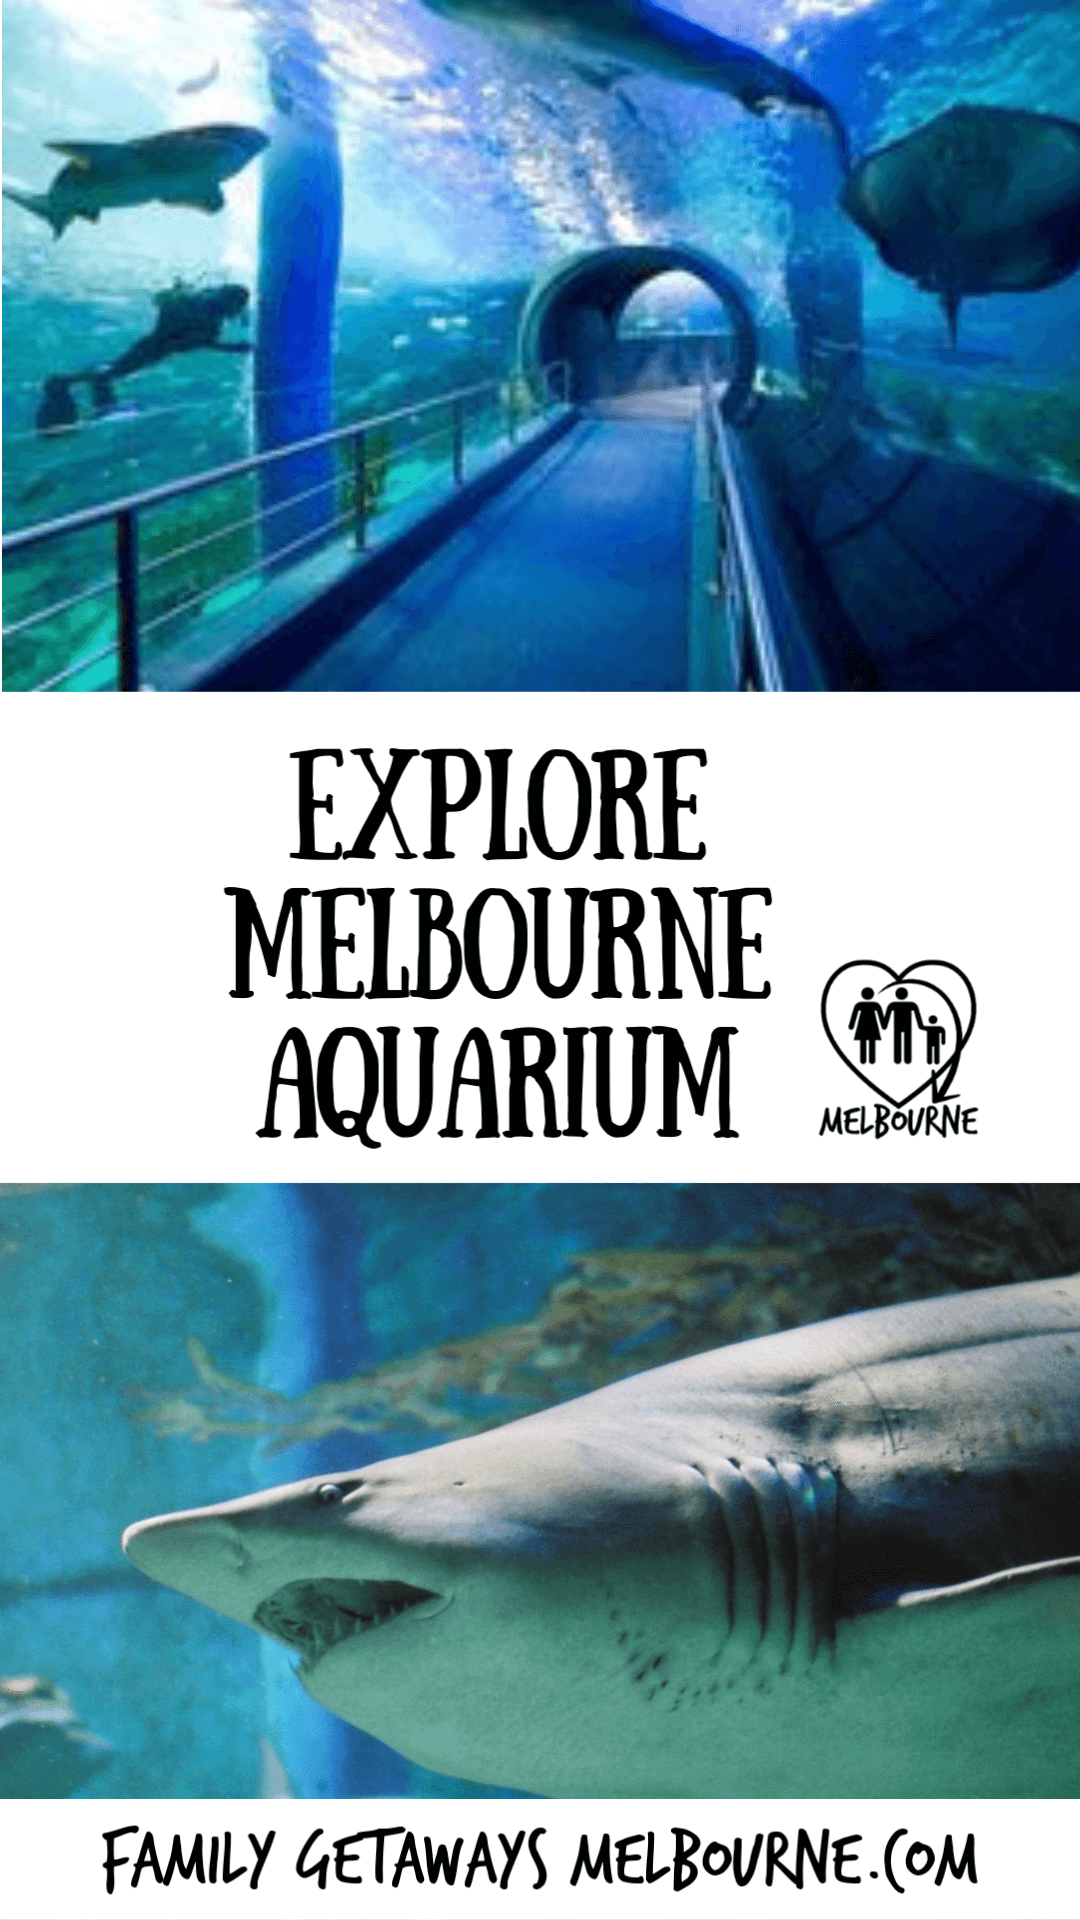 image to pin to pinterest to link to site page on the melbourne aquarium